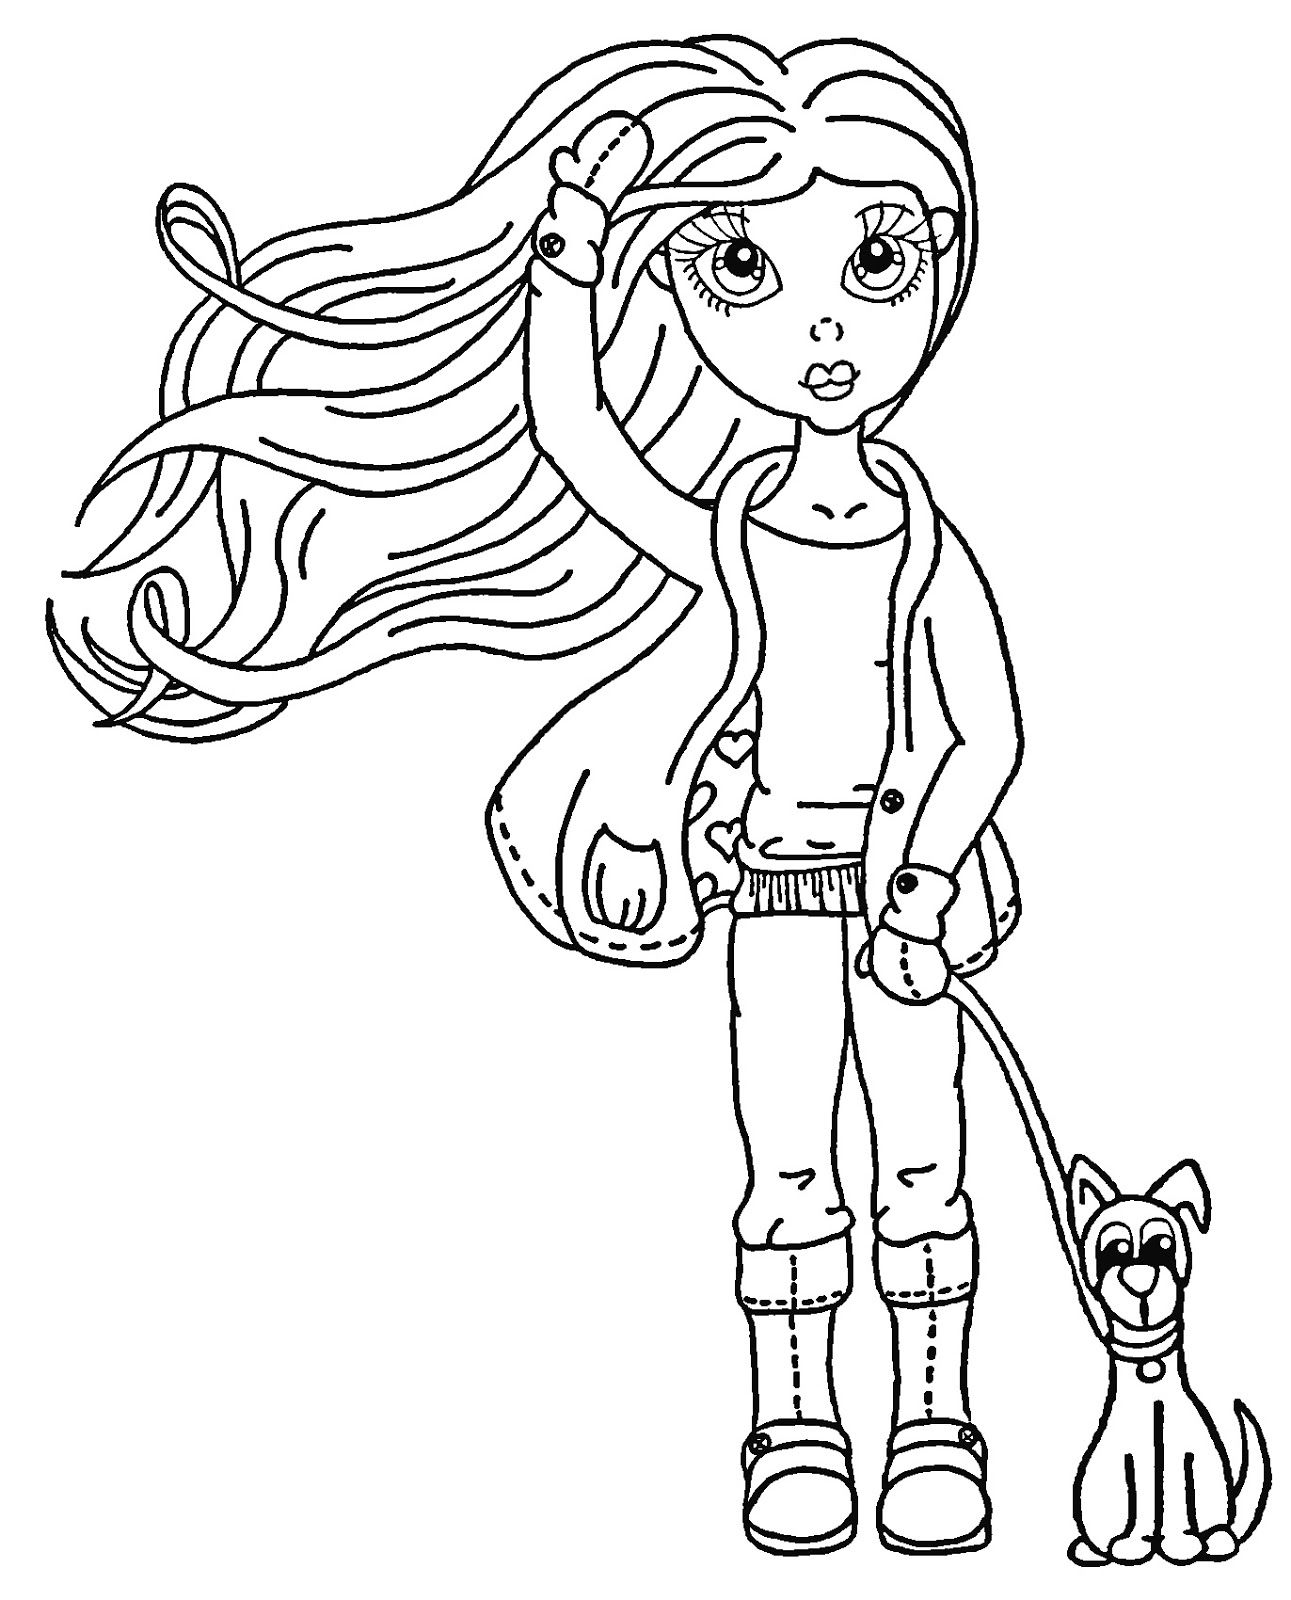 coloring cartoon characters black and white leah digital stamps free black and white pictures digi black cartoon and coloring characters white